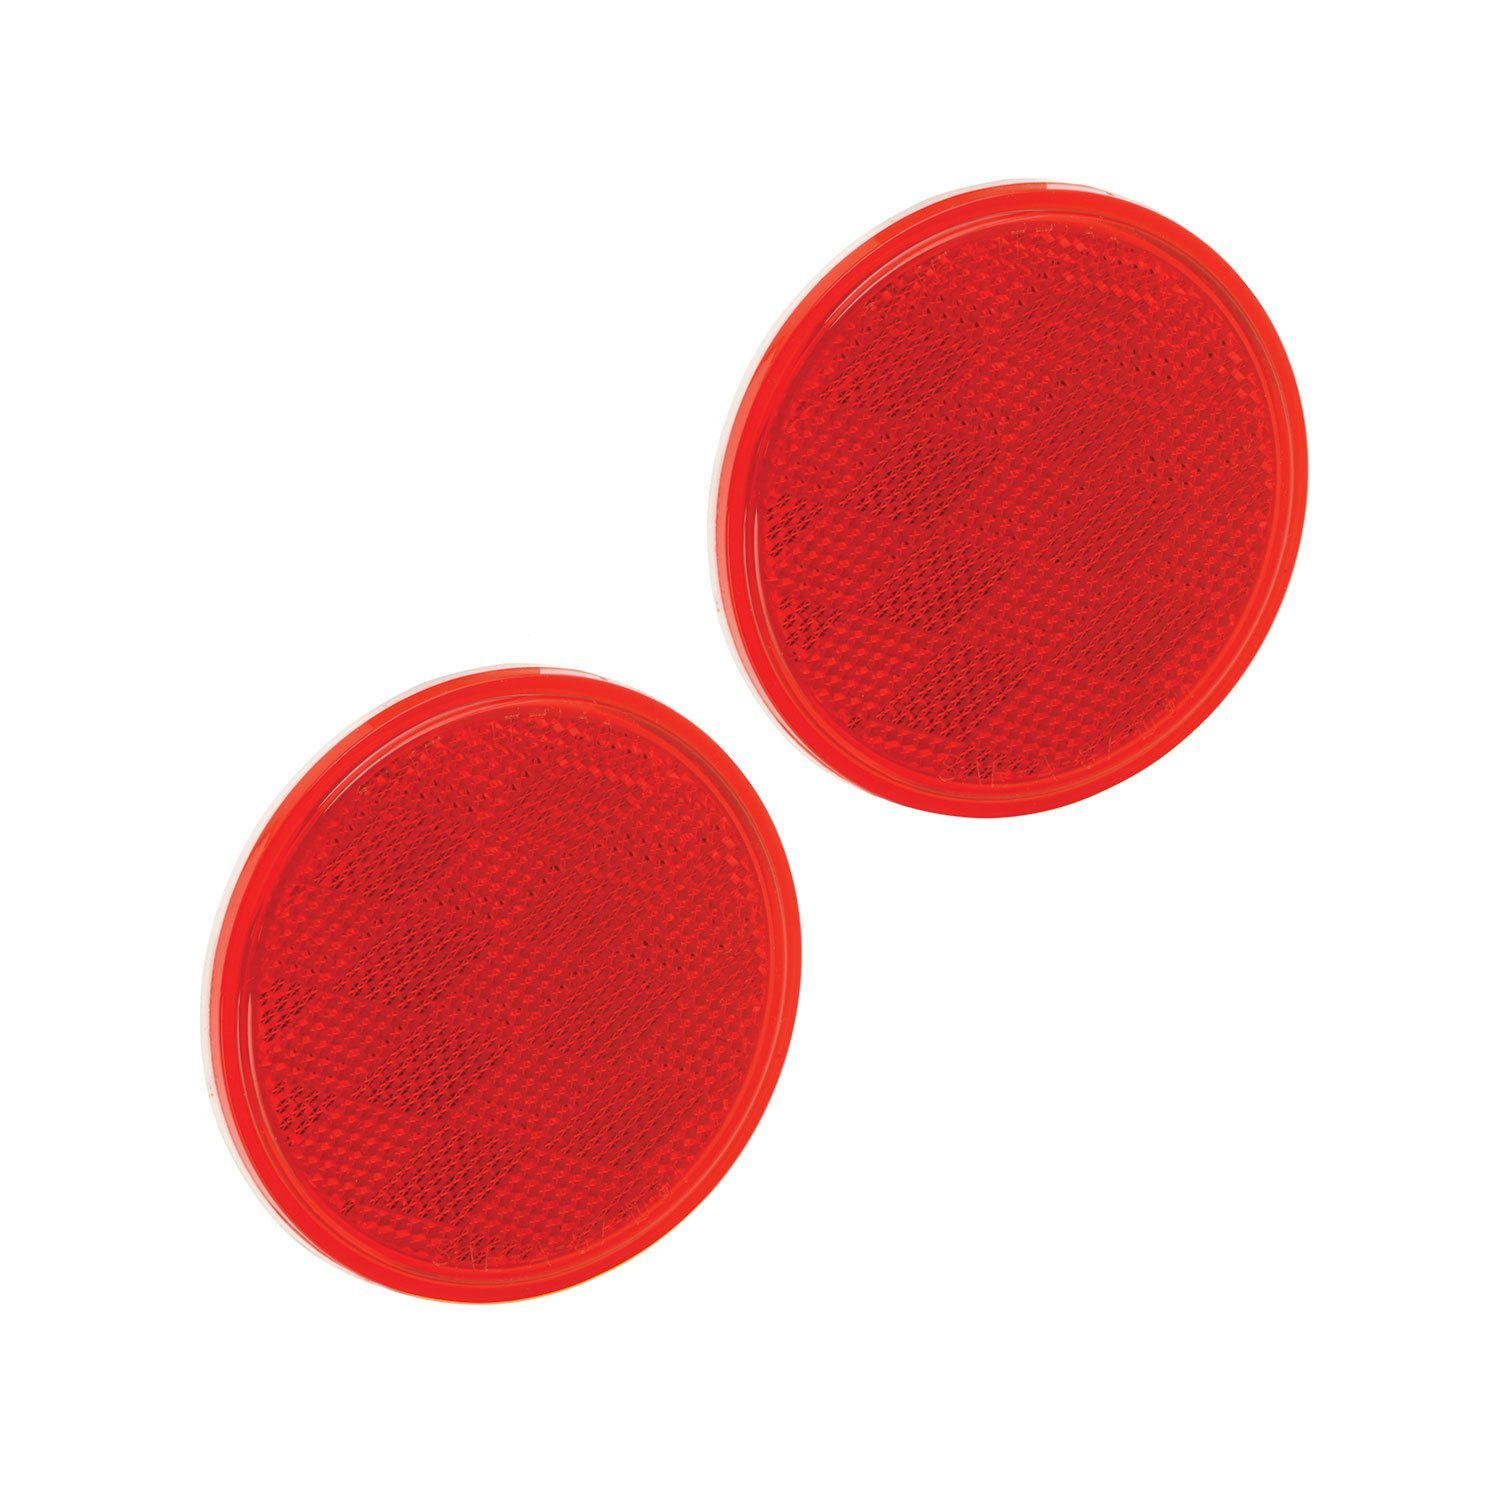 3-3//16 Round Bargman 74-38-010 Reflector with Adhesive Mount Red